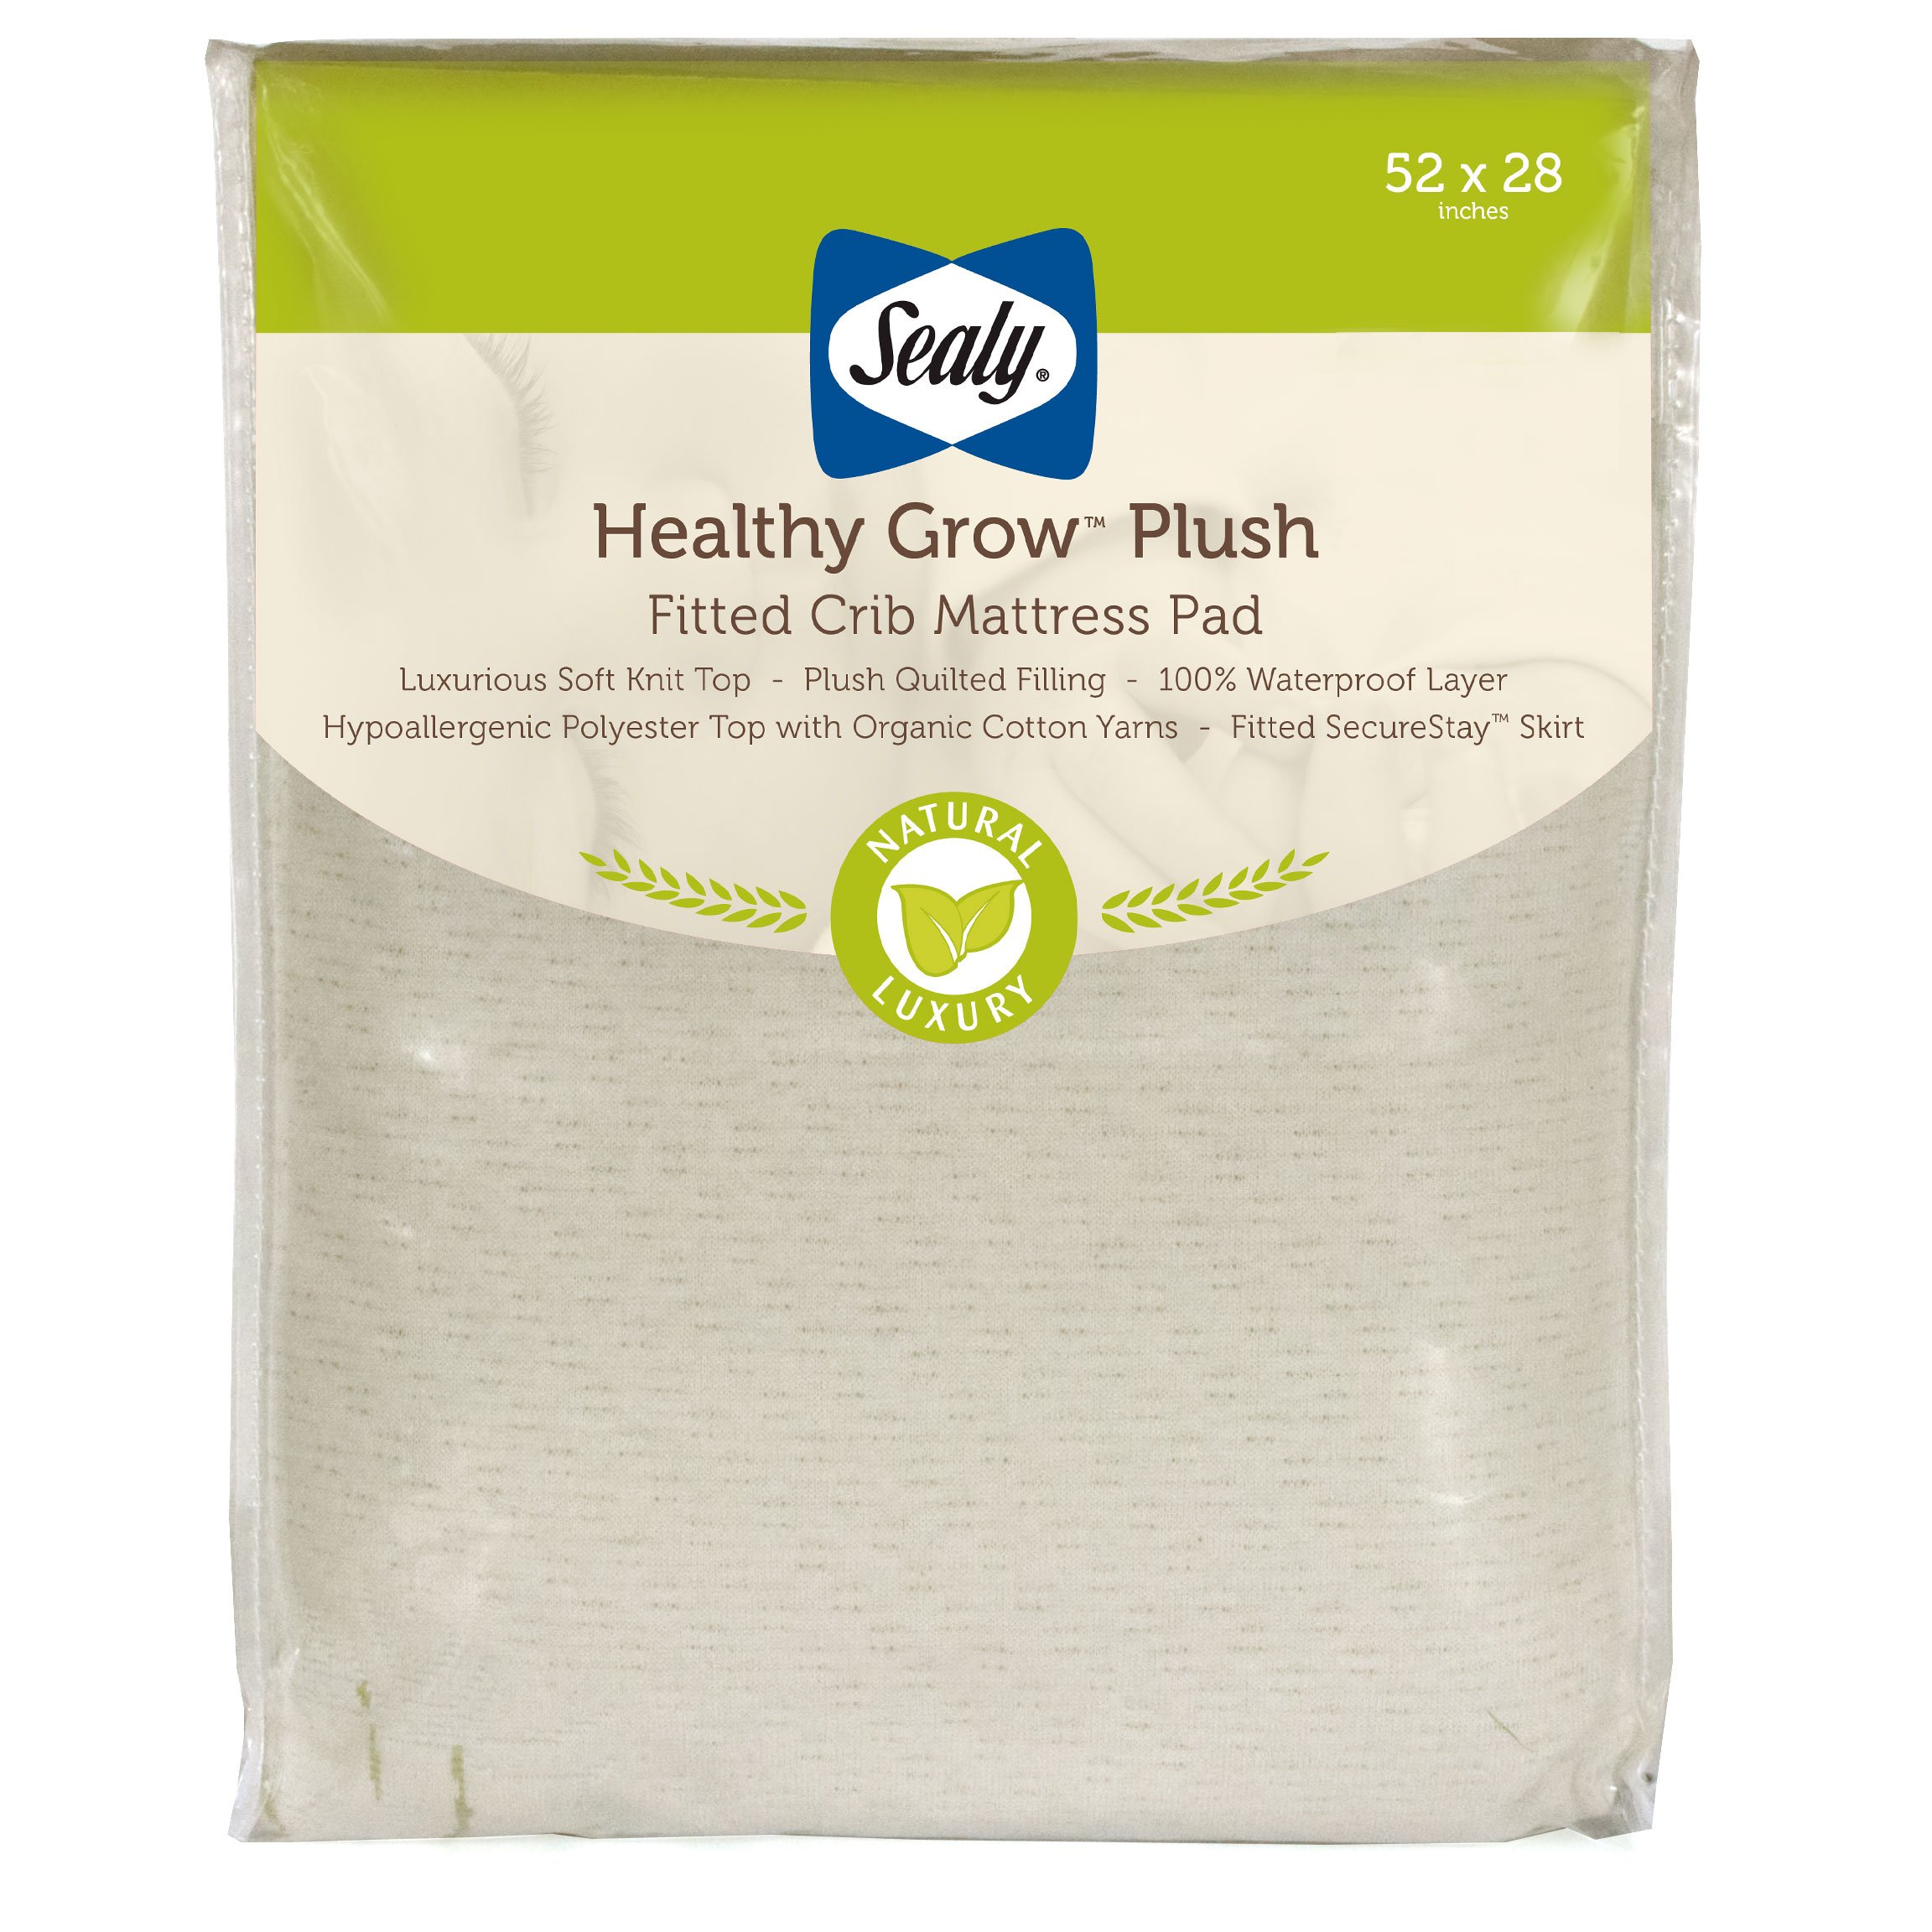 """Sealy Healthy Grow Plush Infant/Toddler Fitted Crib Mattress Pad -Waterproof, Hypoallergenic, Deep Fitted Skirt, Machine Washable & Dryer Friendly 52""""x28"""""""